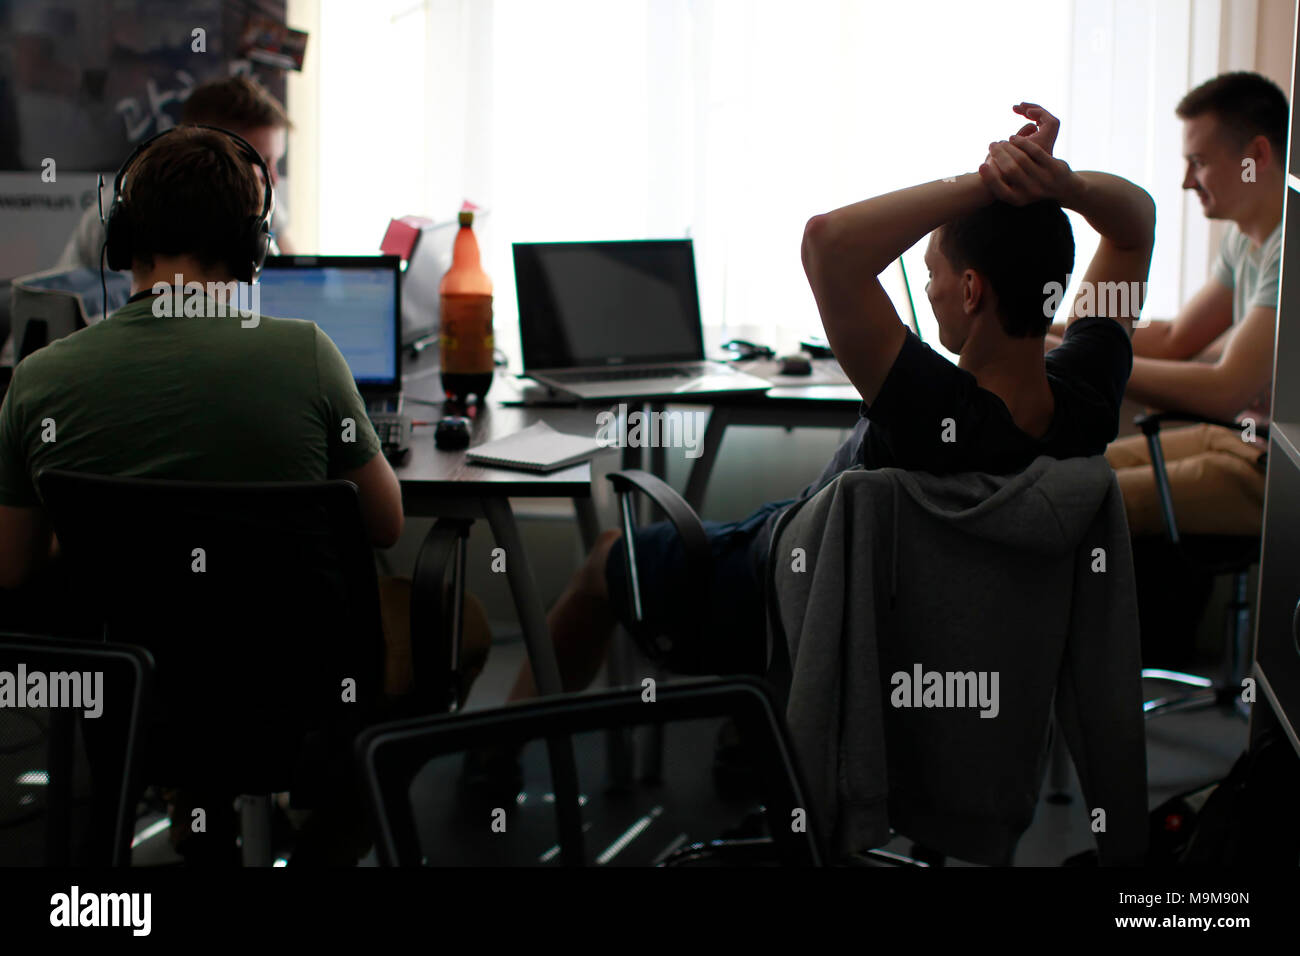 Belarus Minsk 06 August 2016 The Park of High Technologies. Competitions programmers.Programmers for work rest - Stock Image